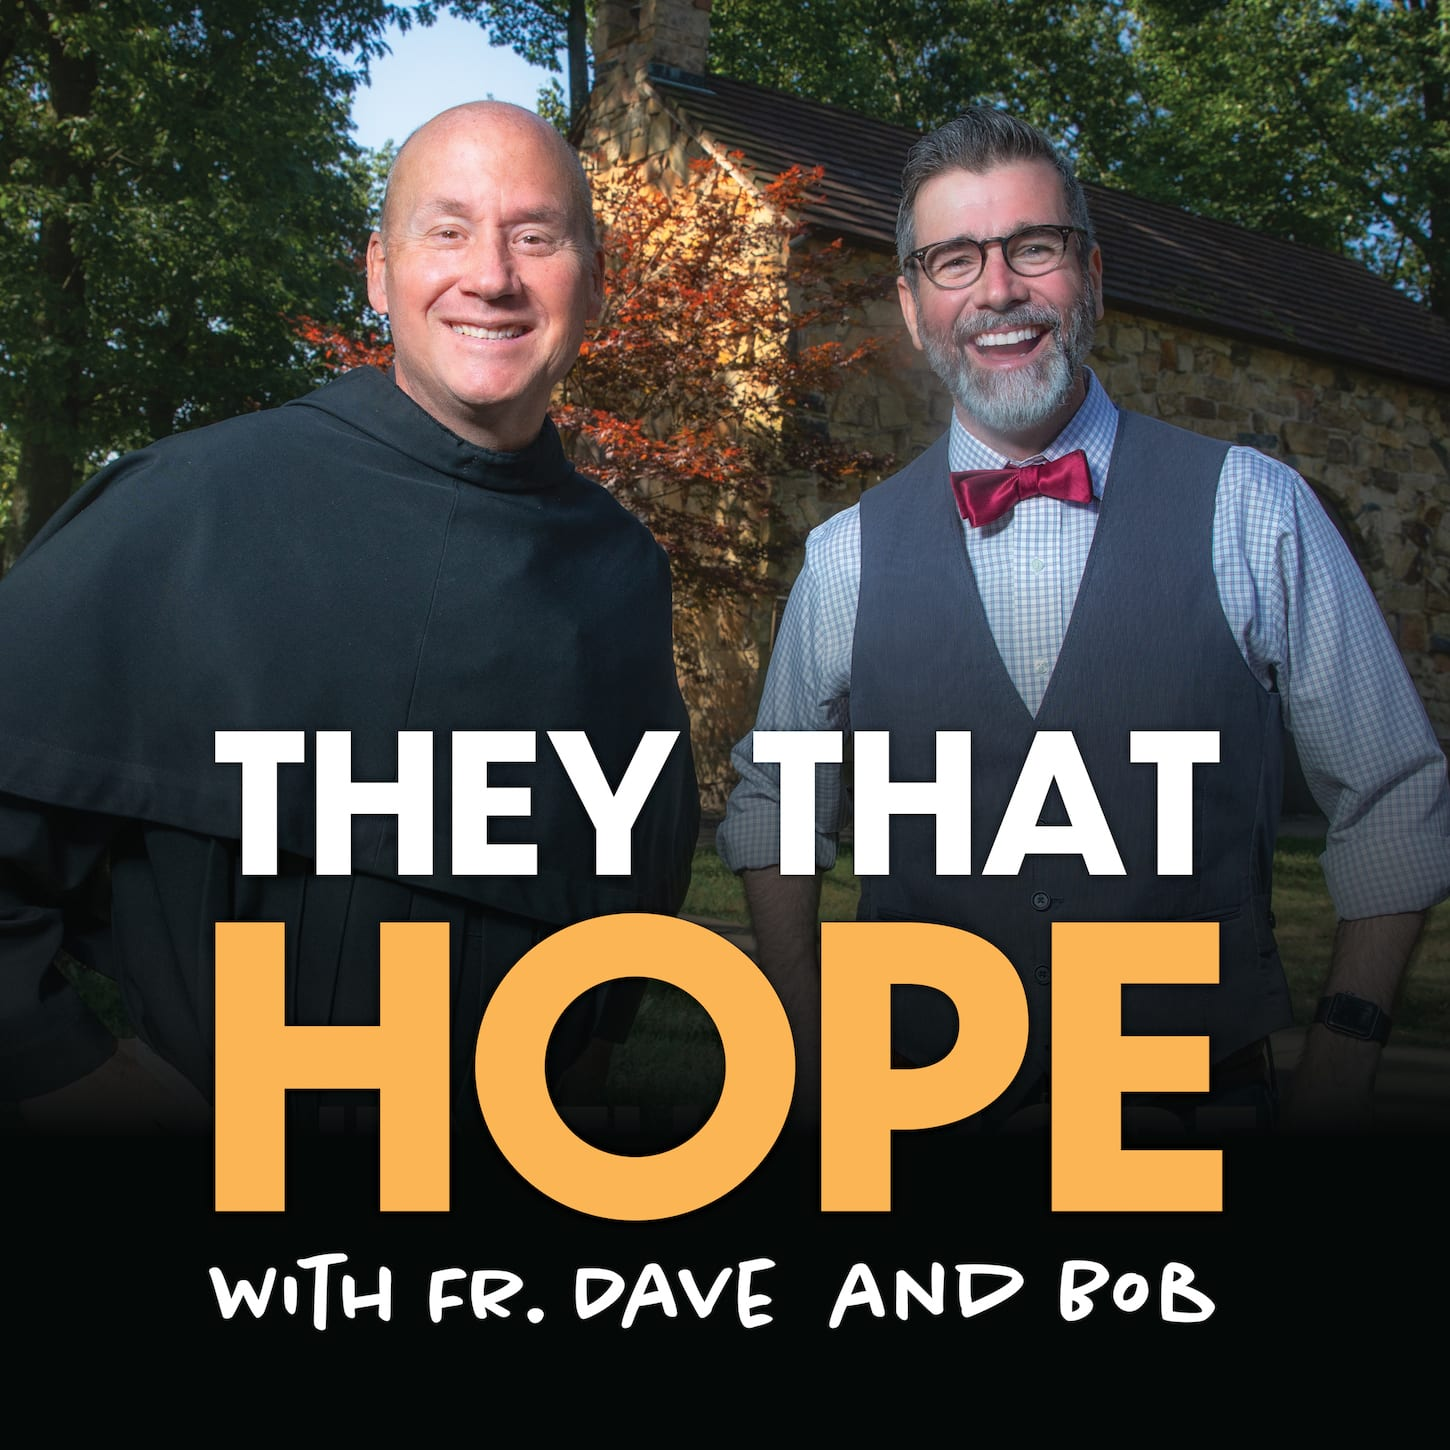 They That Hope with Fr. Dave and Bob - Podcast Graphic